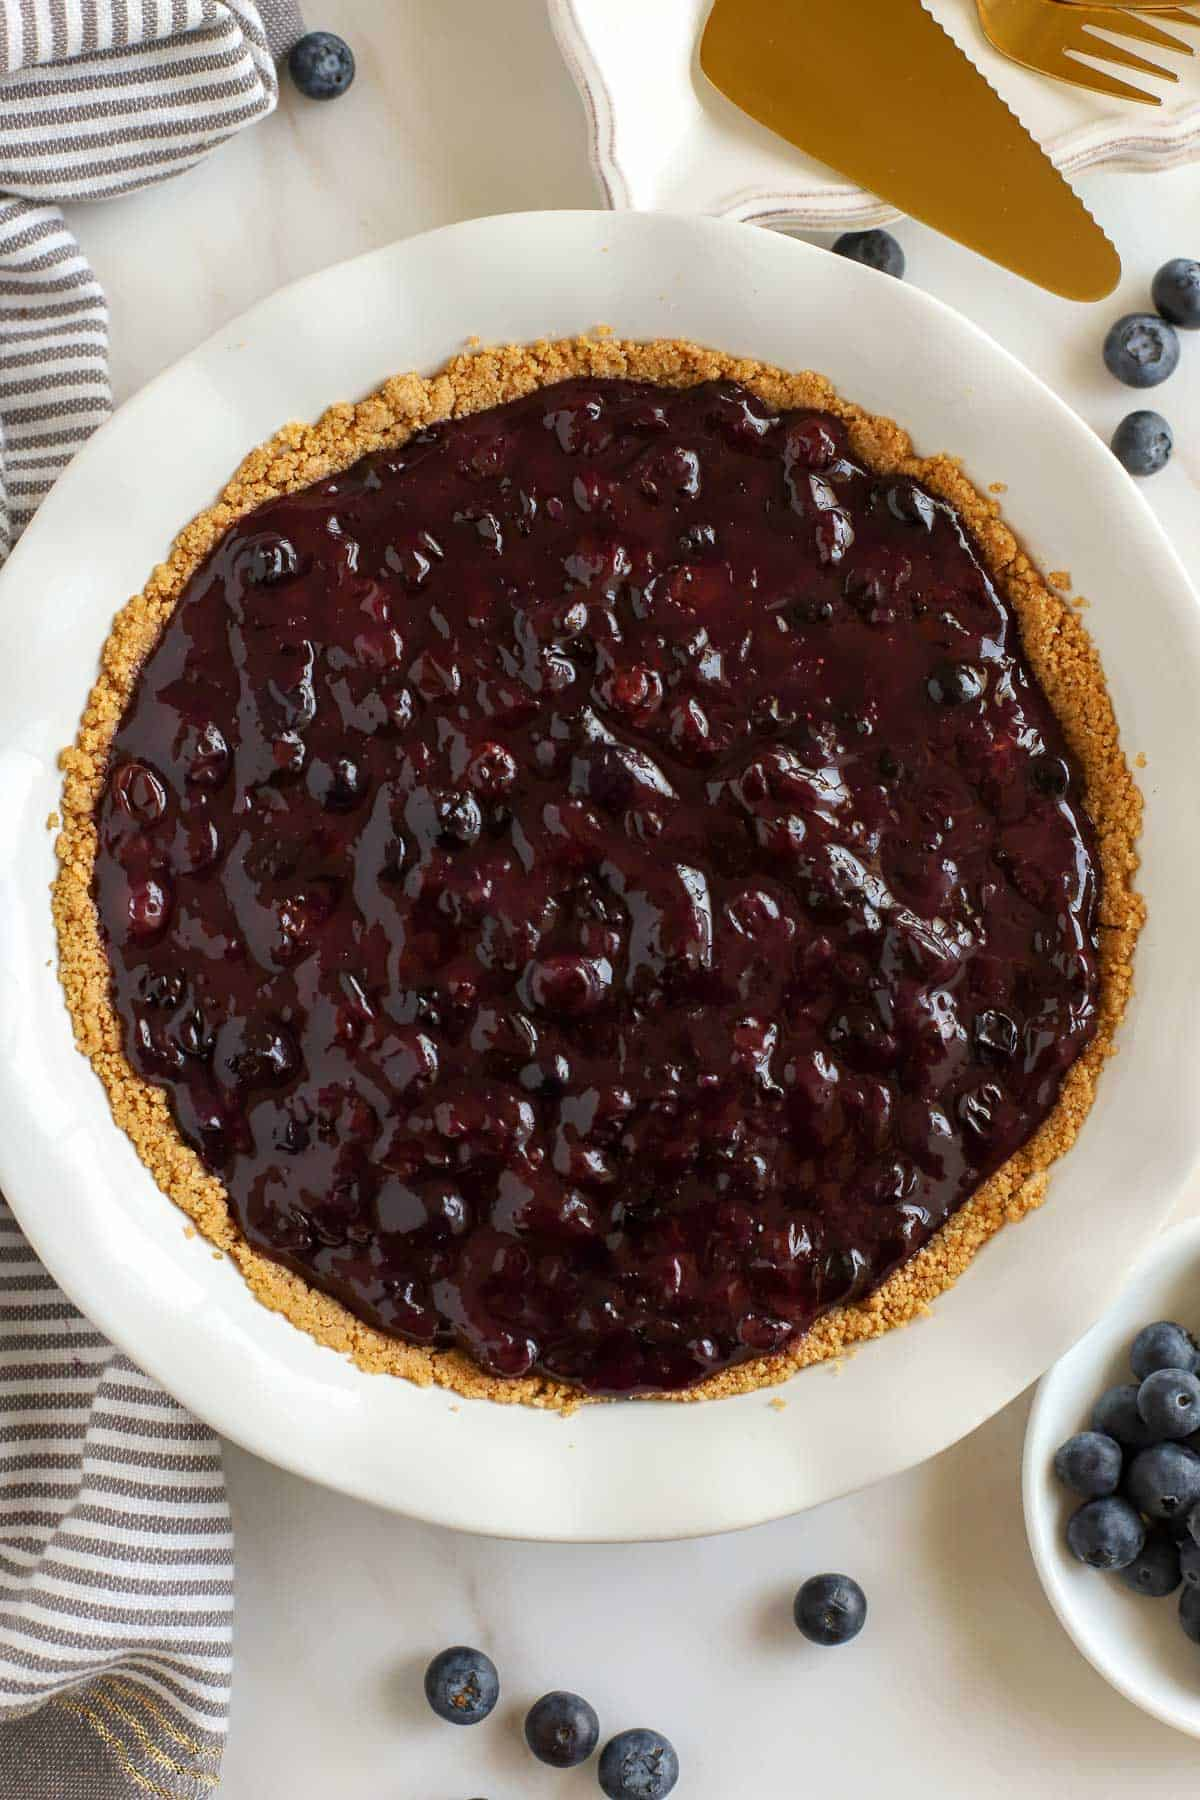 Blueberry pie filling in a graham cracker crust surrounded by fresh blueberries.